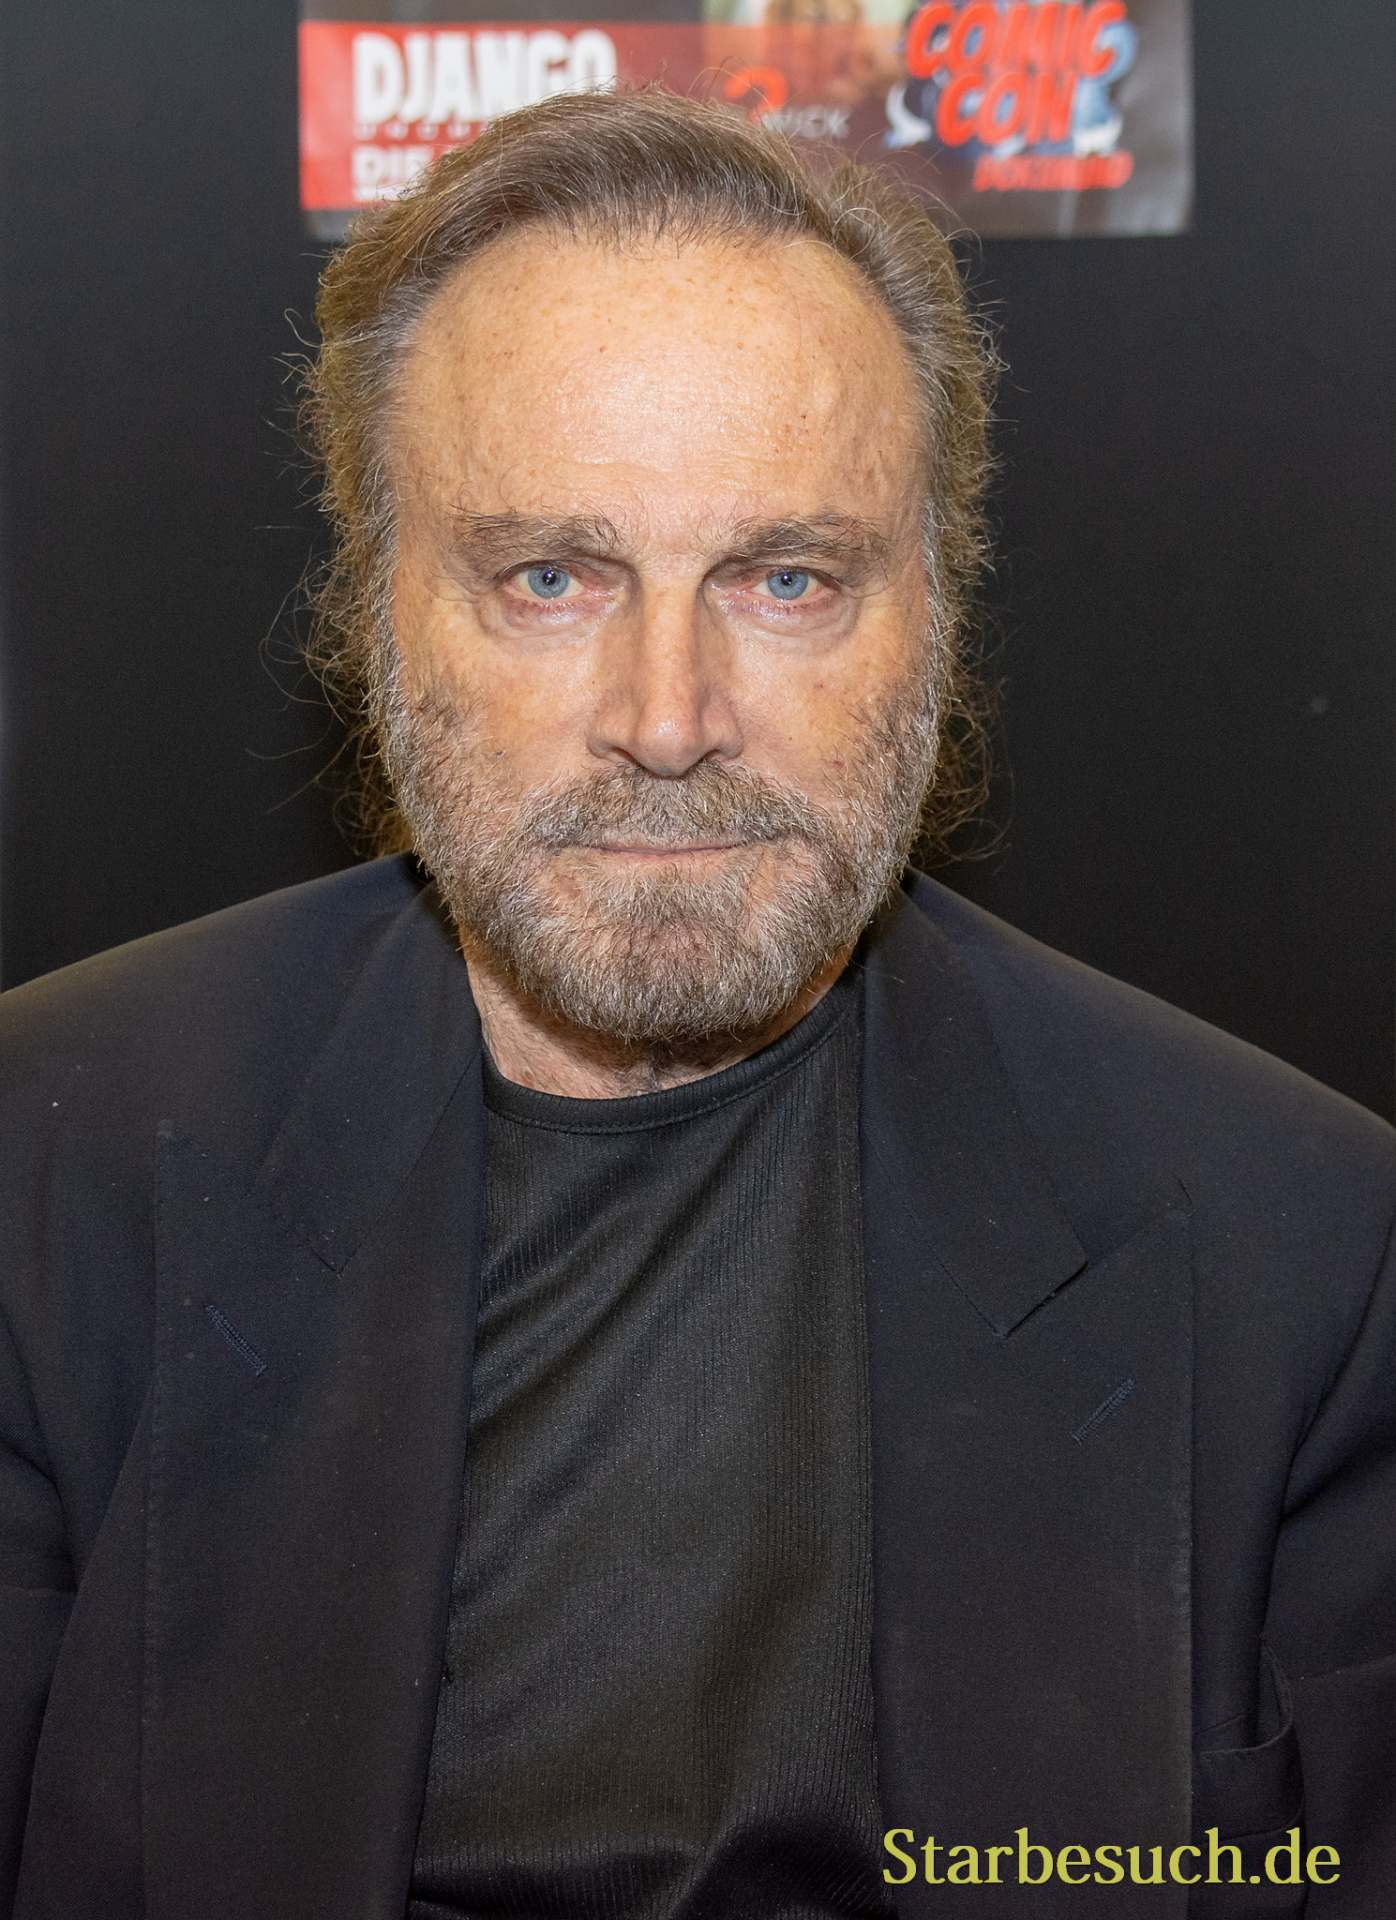 DORTMUND, GERMANY - December 1st 2018: Franco Nero (*1941, Italian actor) at German Comic Con Dortmund, a two day fan convention